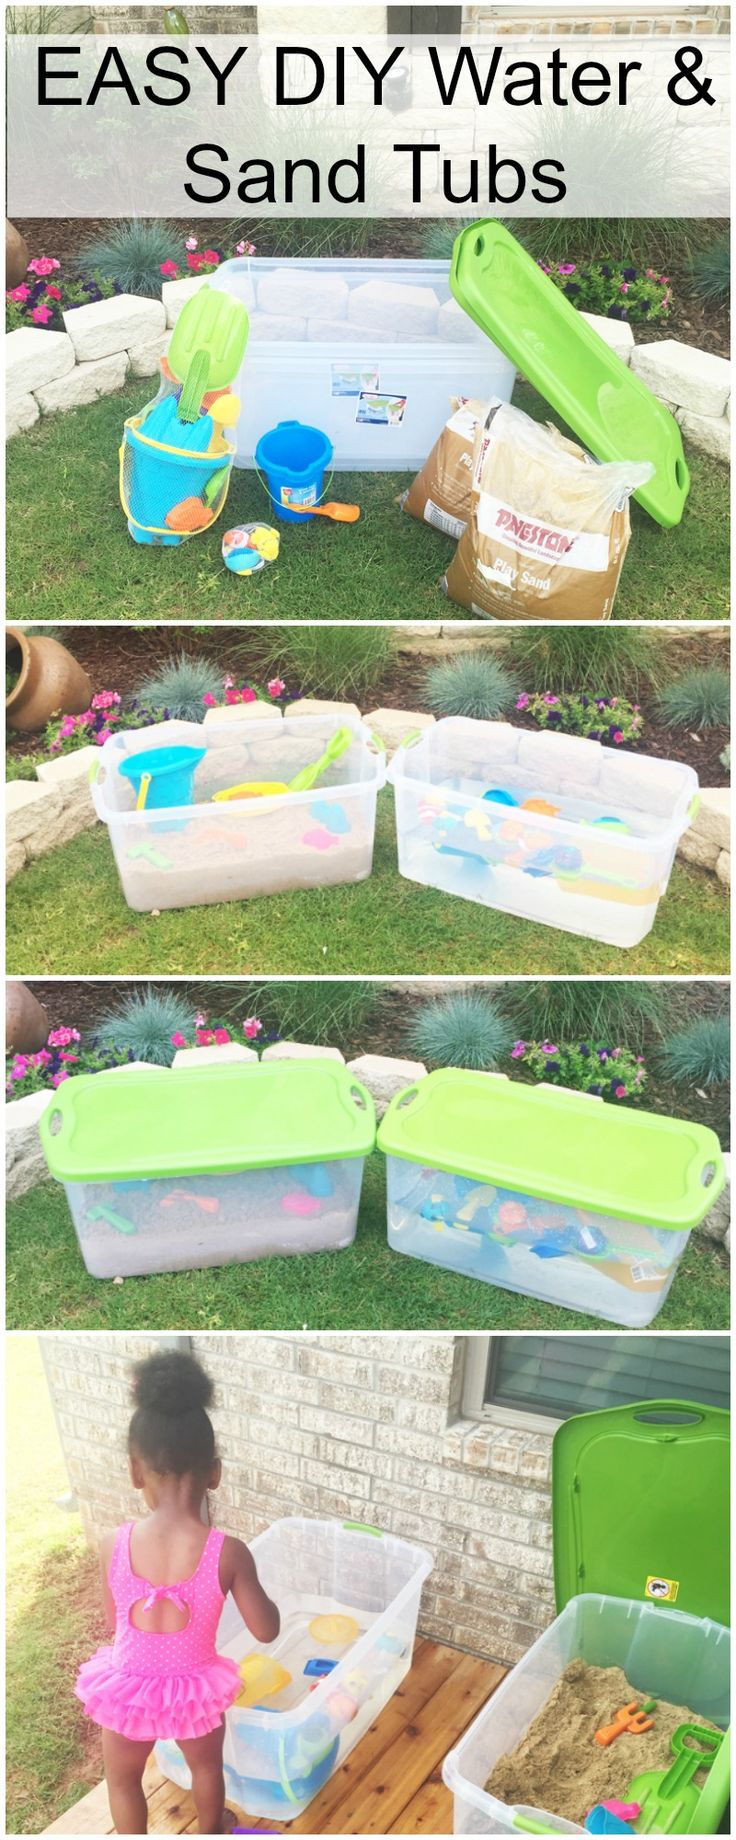 DIY Water and Sand Table - Easy Water and Sand Tubs perfect for winter in the garage!!